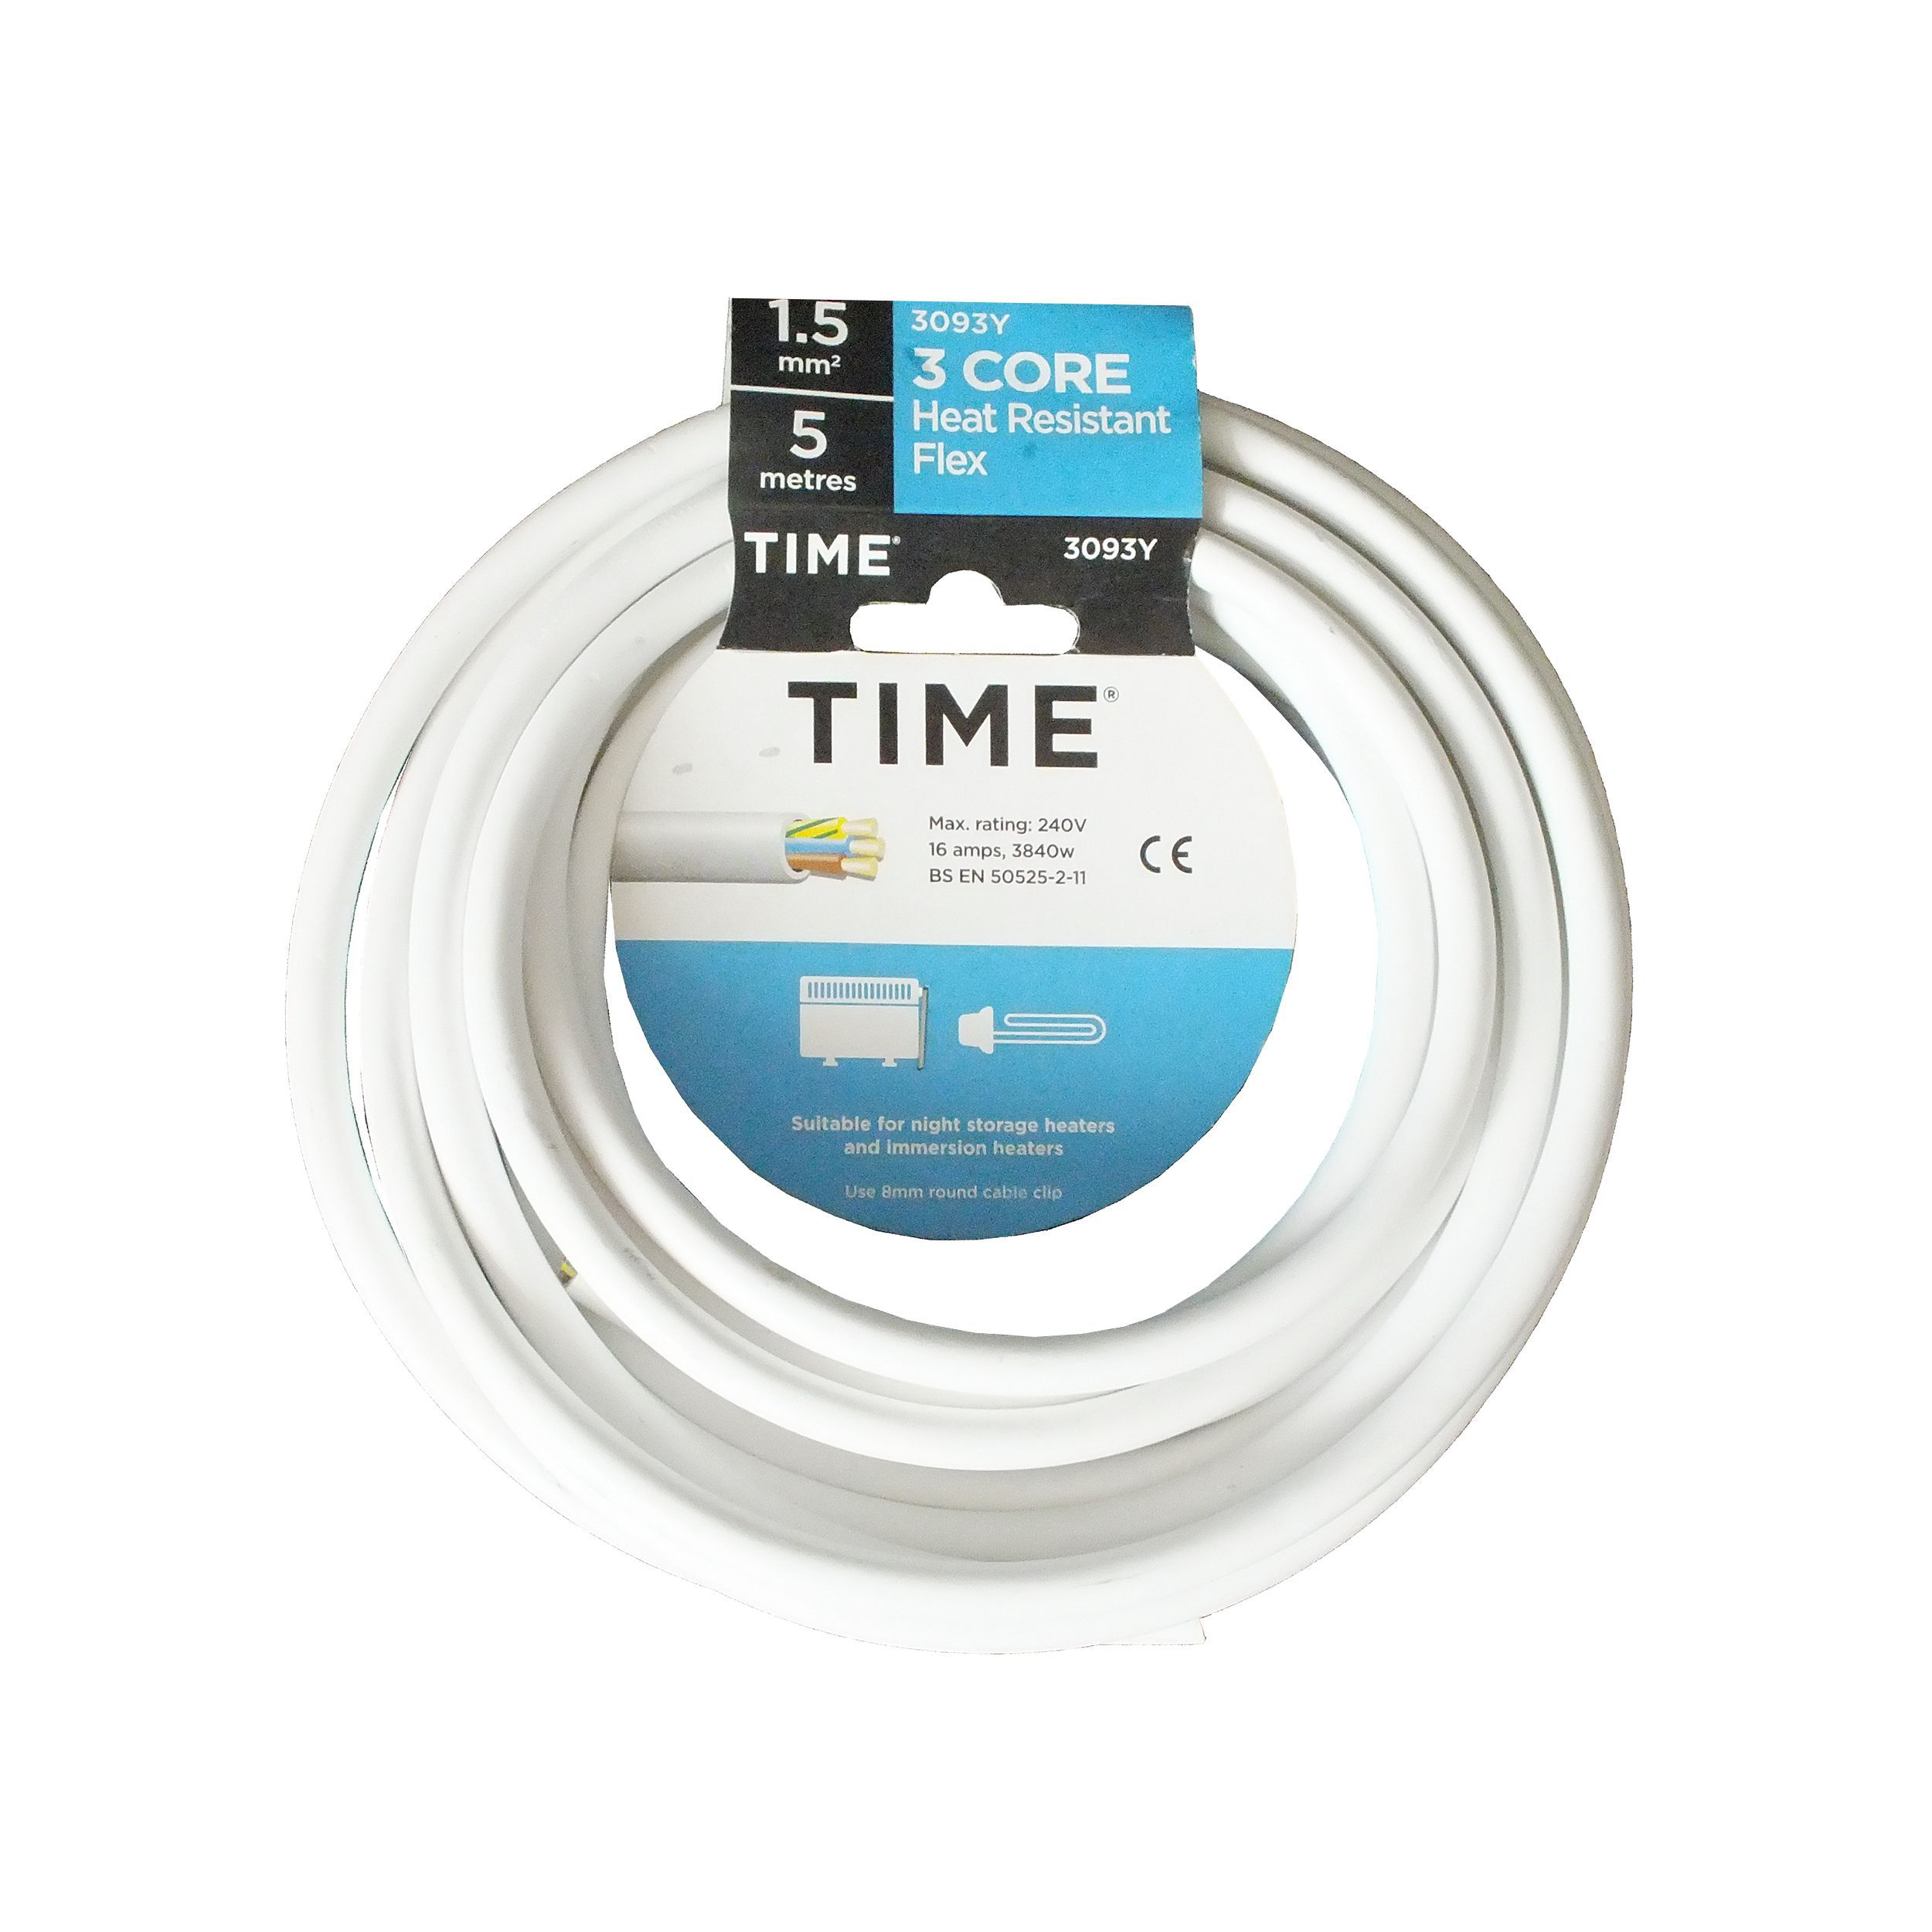 Flexible Cable Fixture : Time mm² m heat resistant flexible cable white